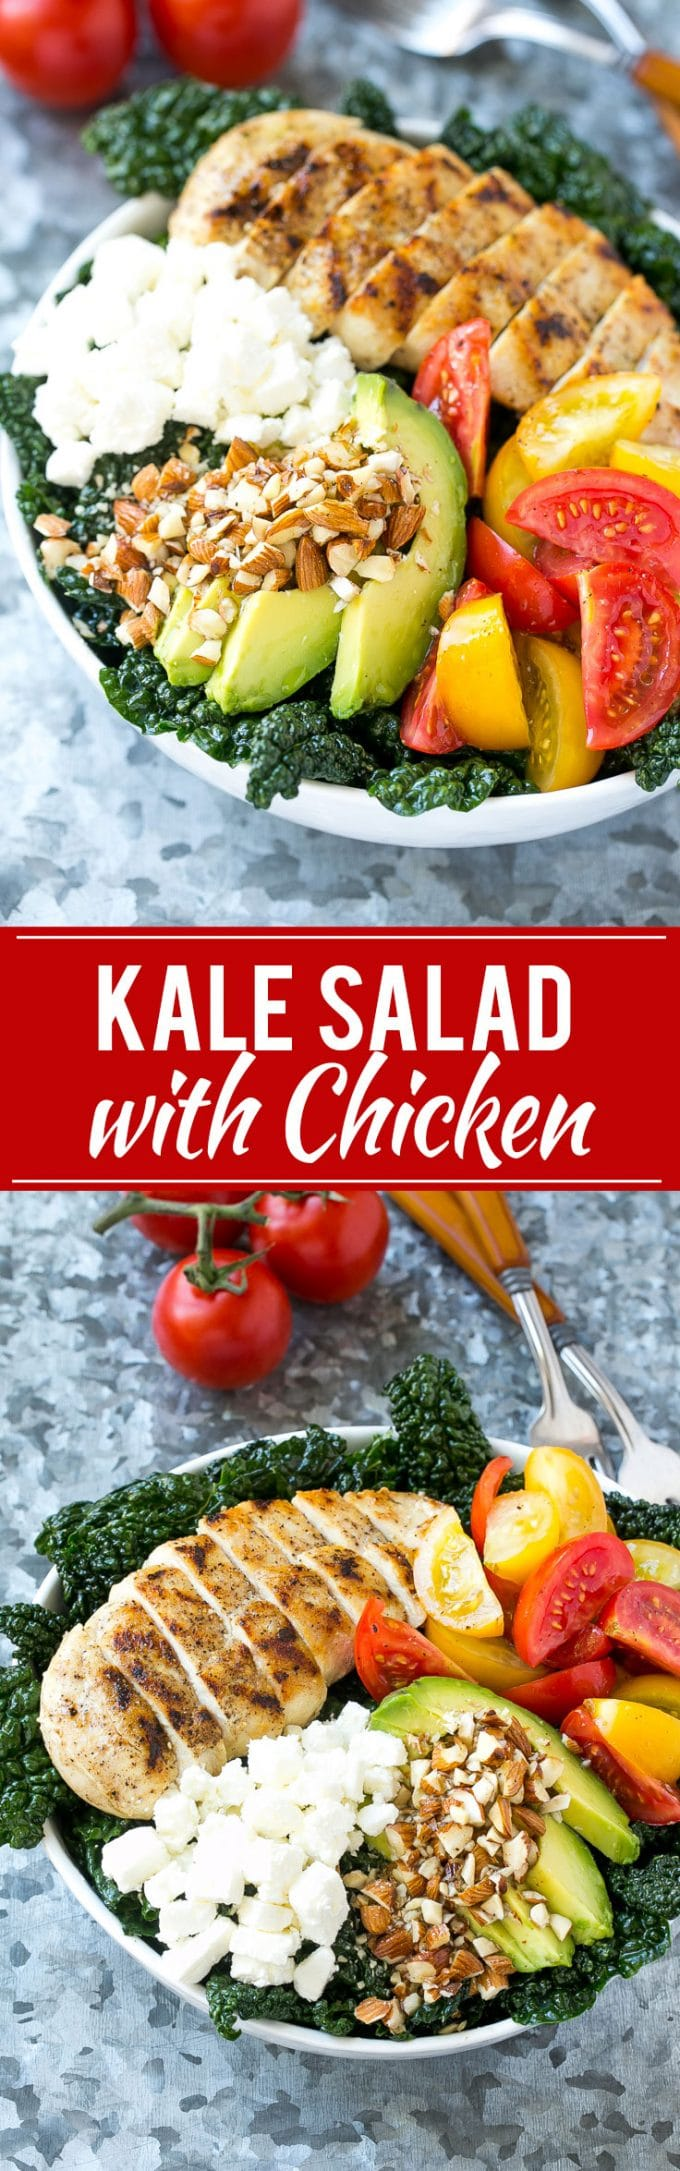 Tuscan Kale Salad Recipe | Kale Salad | Grilled Chicken Salad | Healthy Salad Recipe